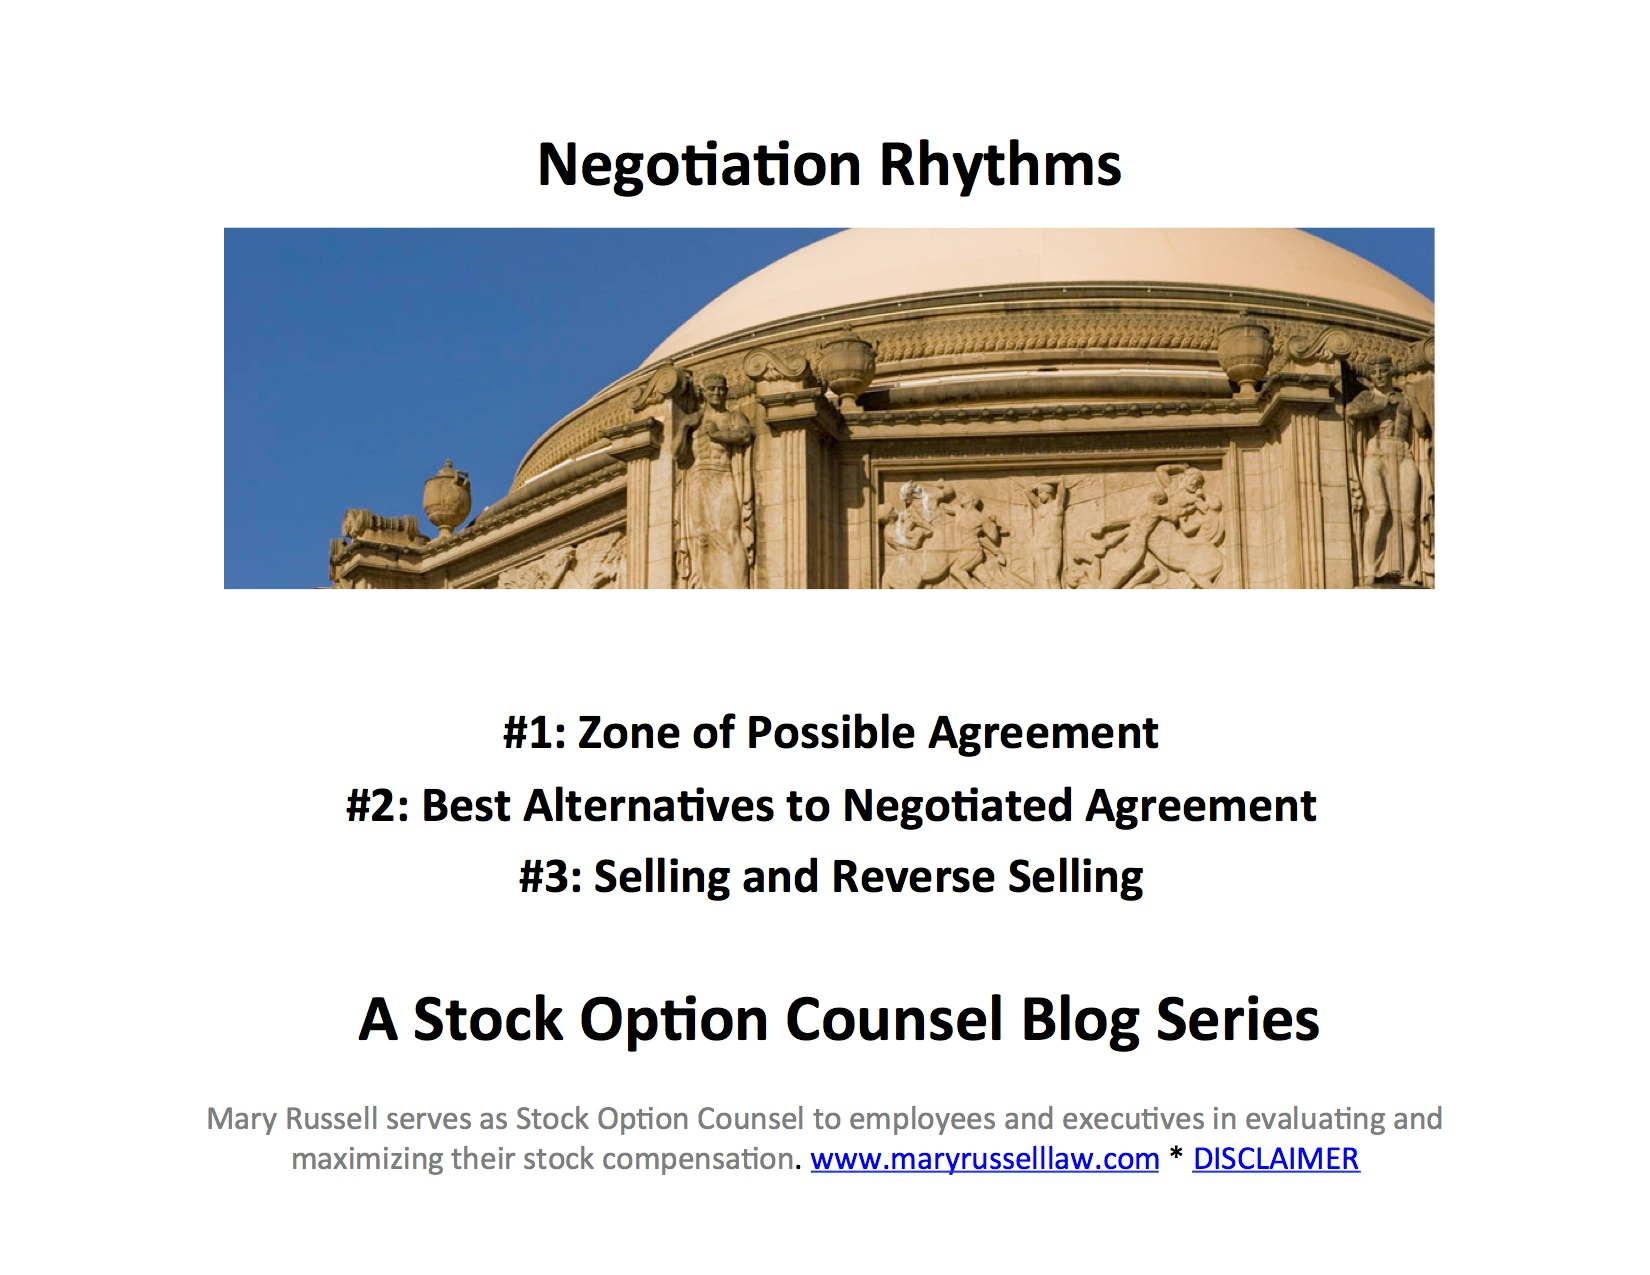 Intro to Negotiation Rhythms.jpg